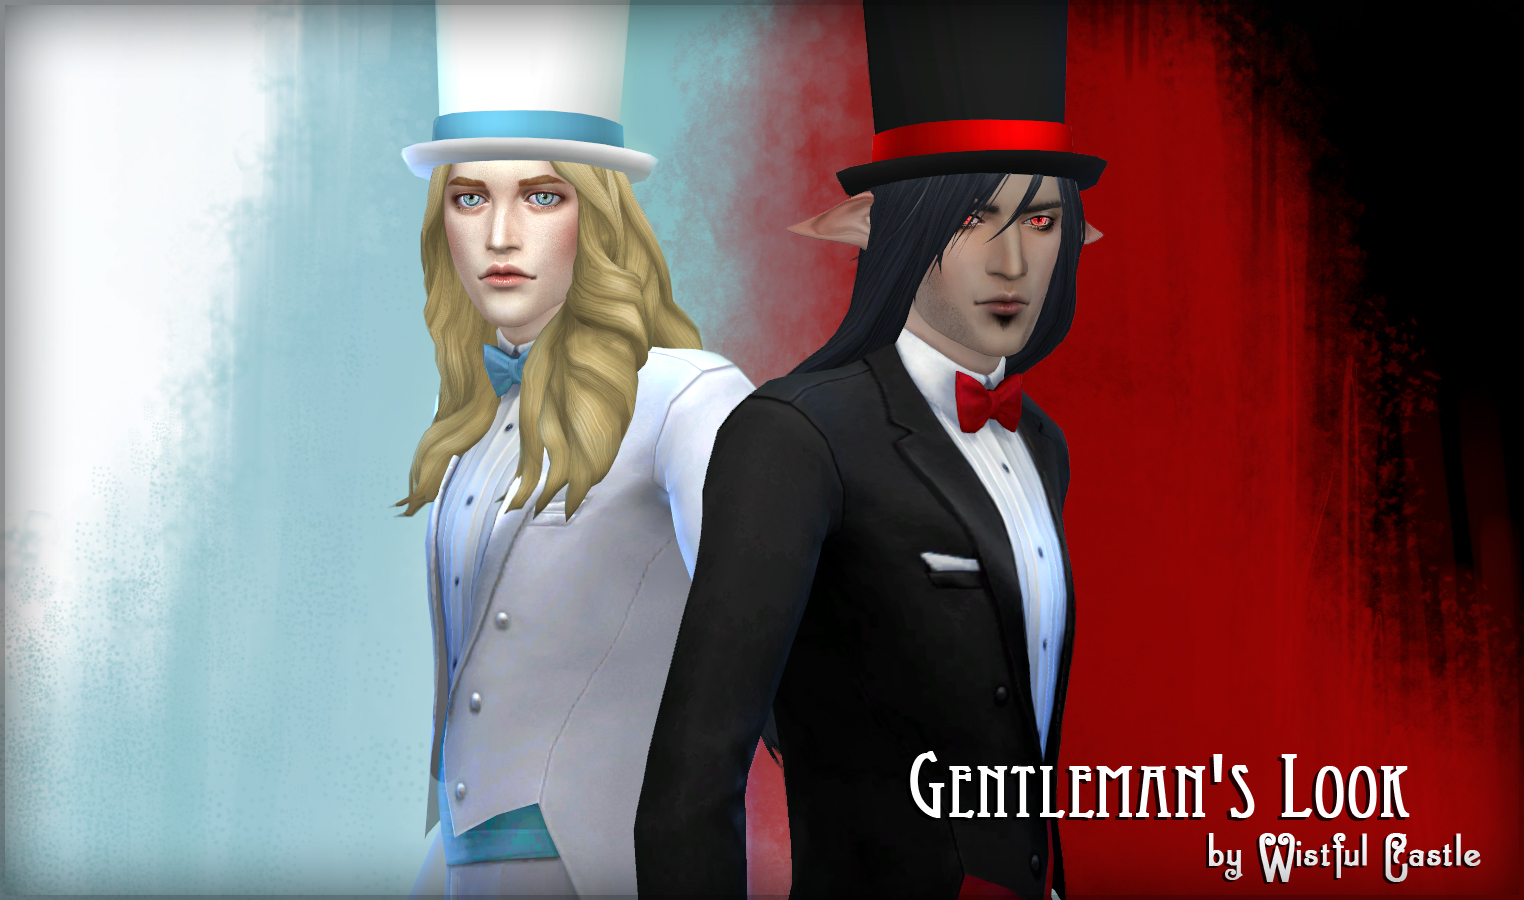 Gentlemen's Look by Wistful Castle